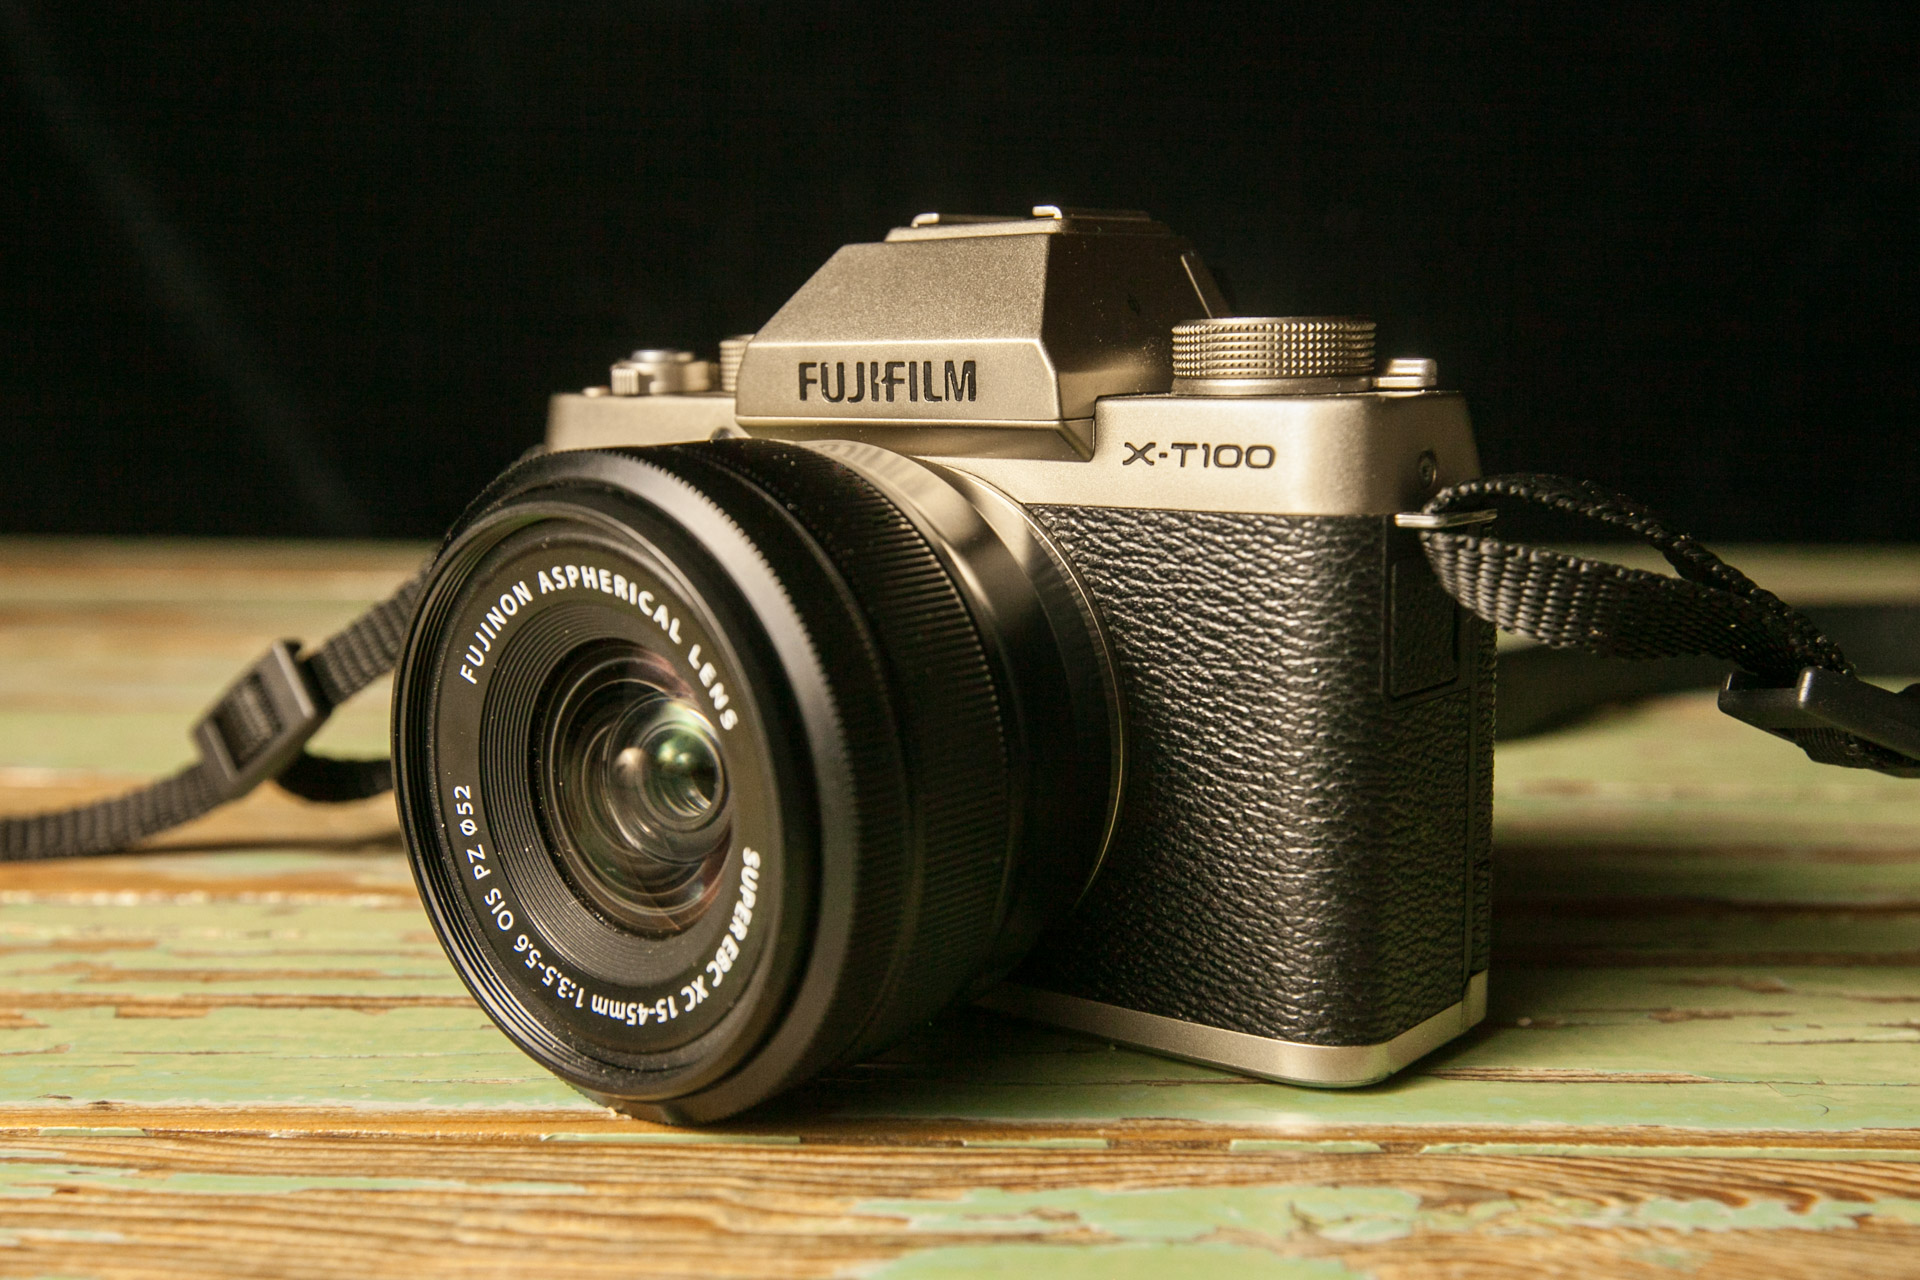 An image of the Fujifilm X-T100 sitting on a table